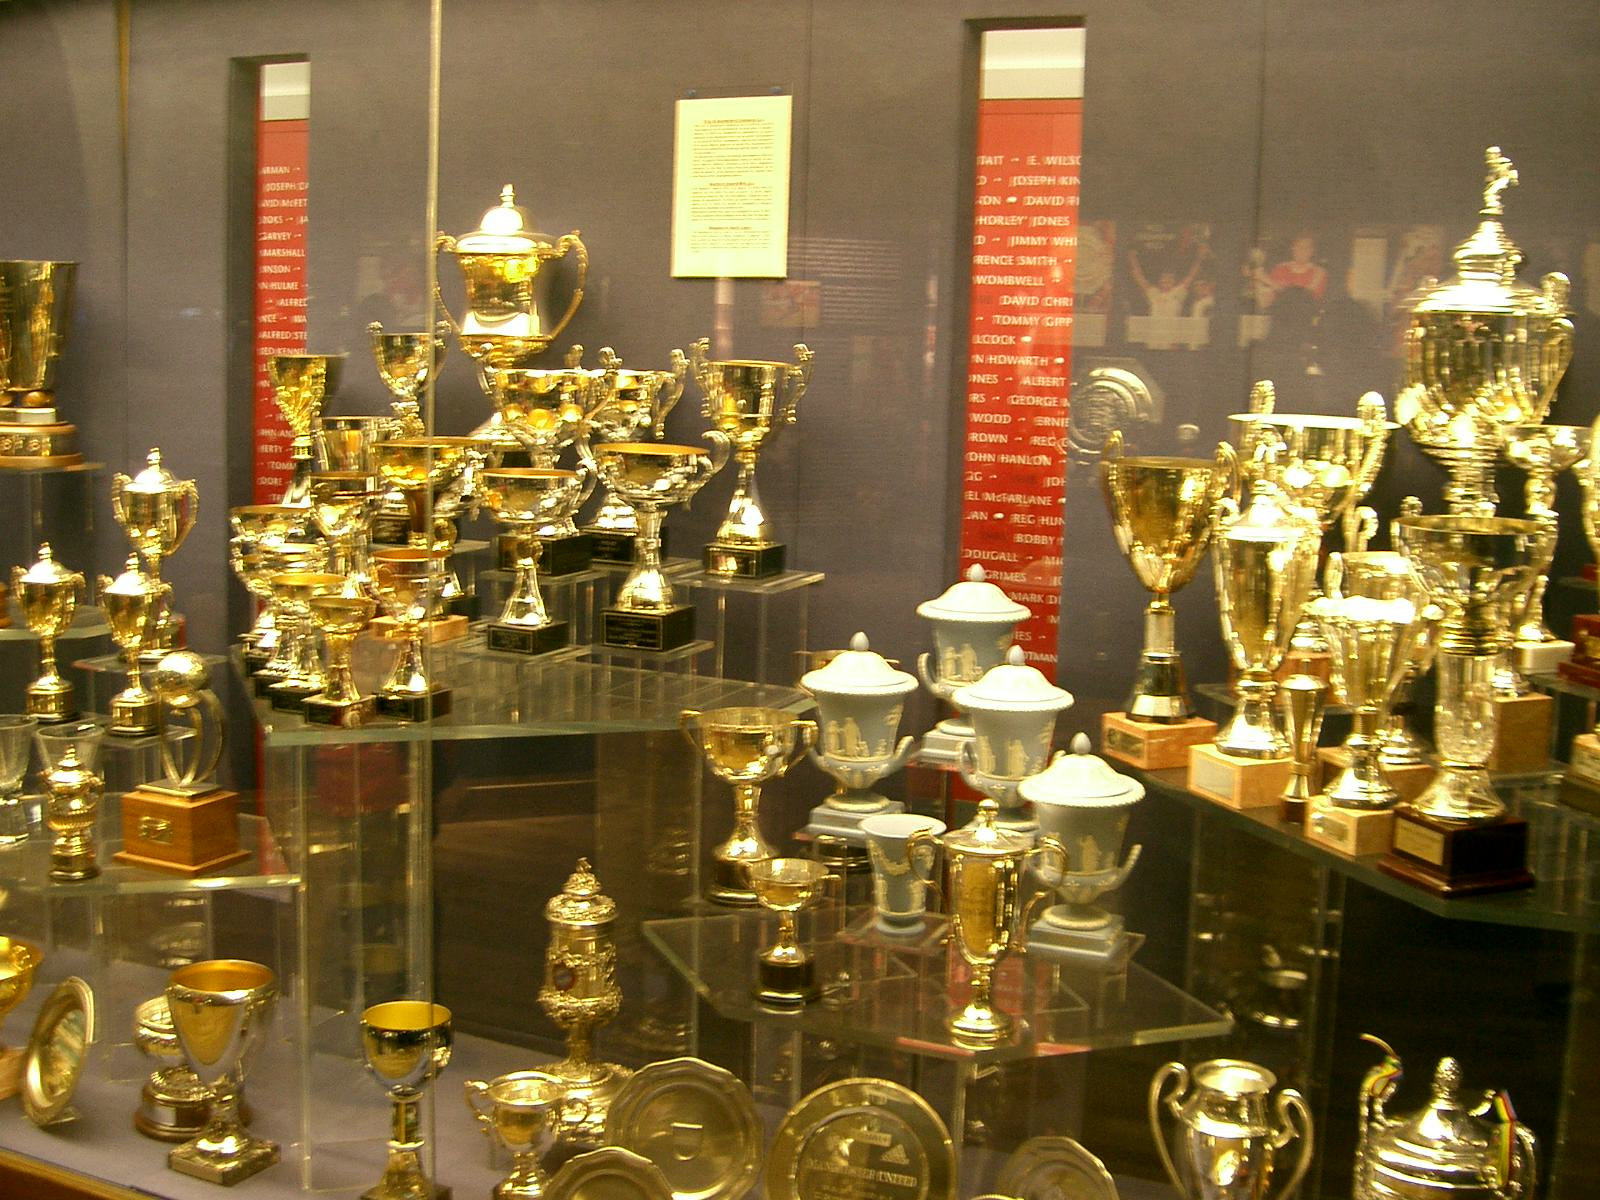 FilePlenty Of Silverware On Display In The Manchester United Museum 262764554